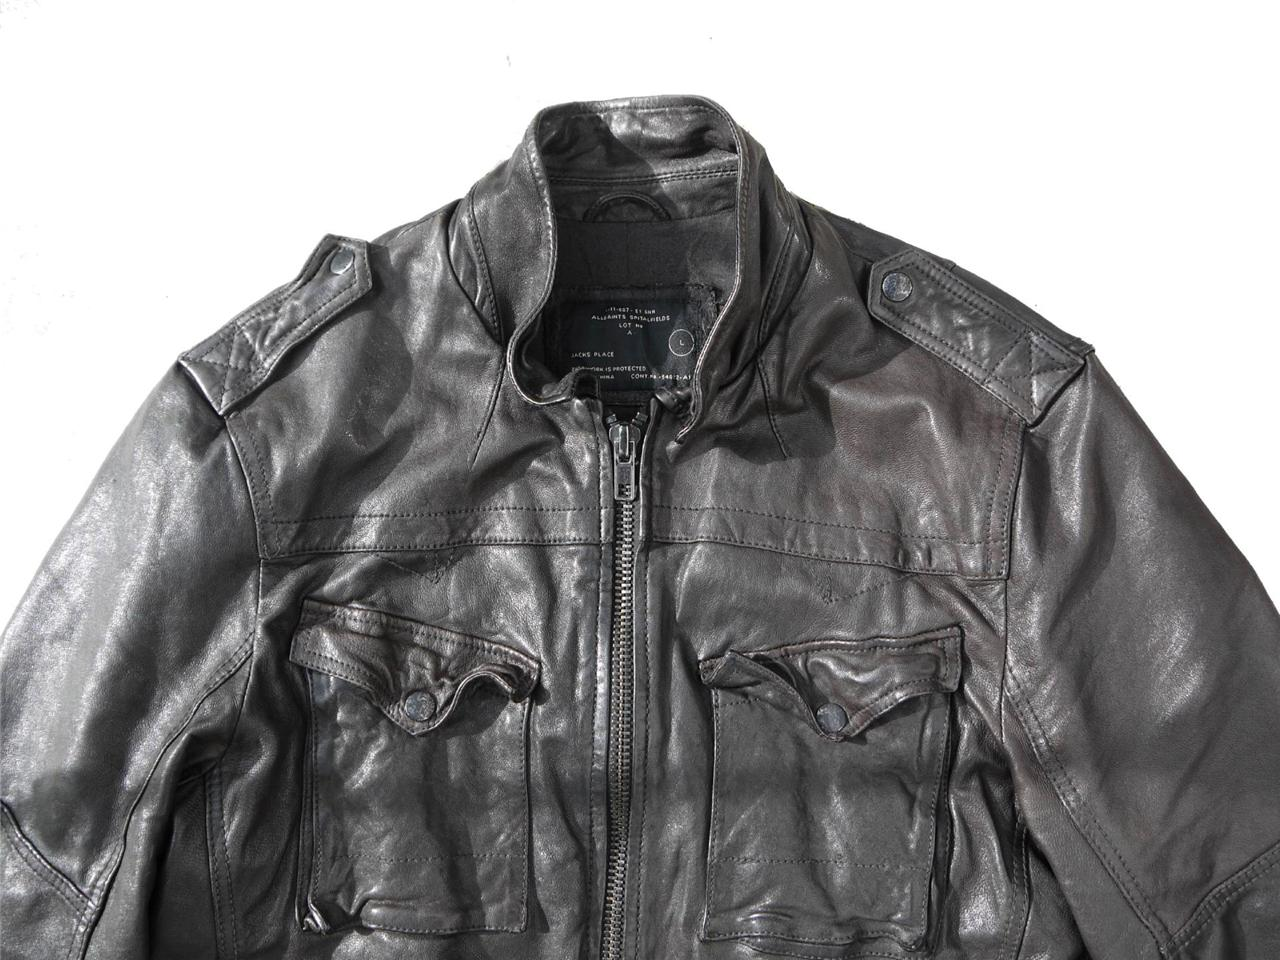 *CLASSIC STYLE* Spitalfields ALL SAINTS POST COMMAND LEATHER JACKET RRP £295 L